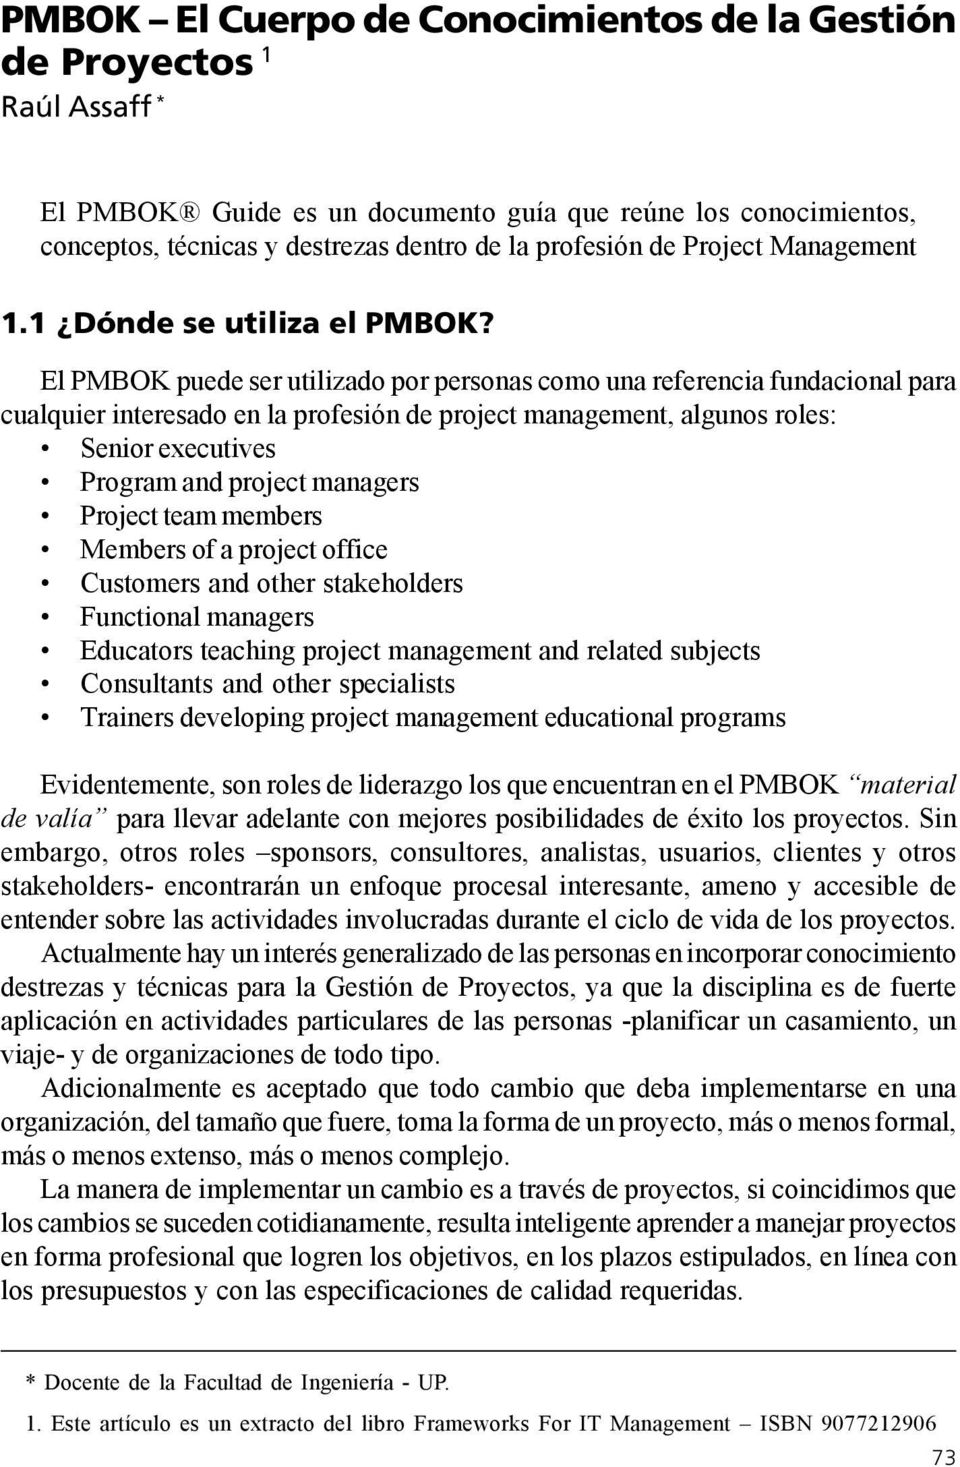 El PMBOK puede ser utilizado por personas como una referencia fundacional para cualquier interesado en la profesión de project management, algunos roles: Senior executives Program and project